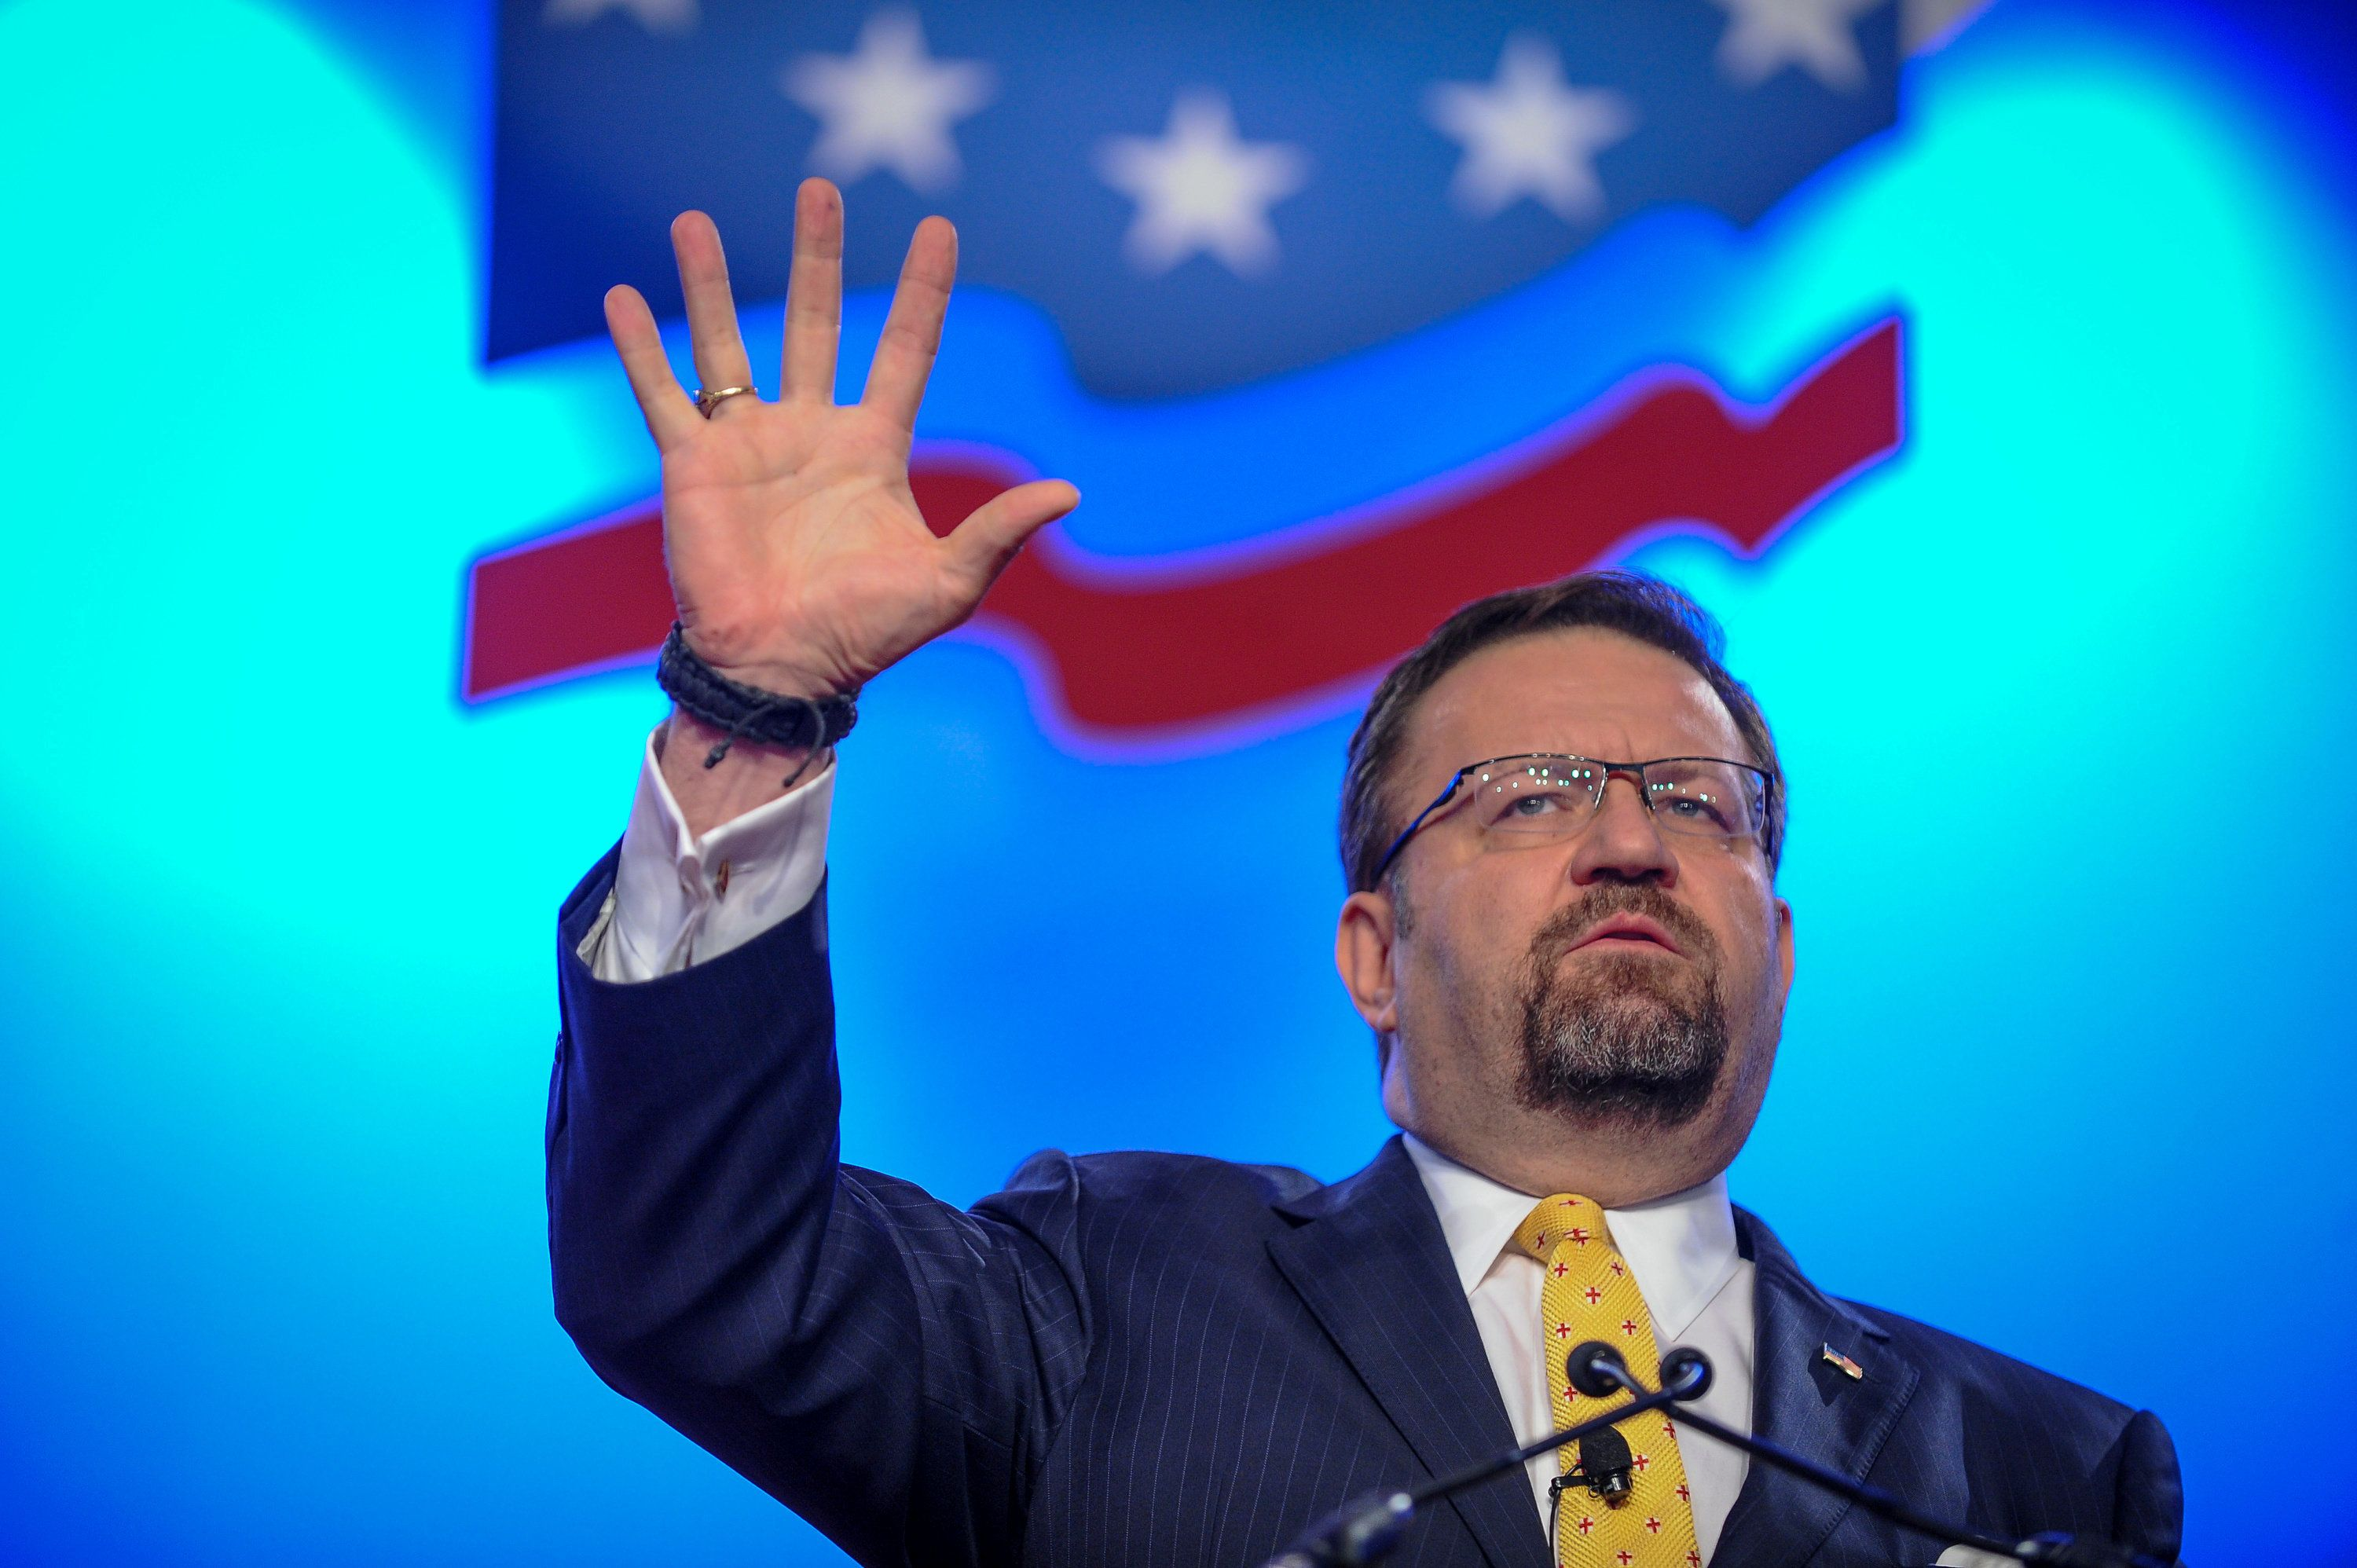 Former deputy assistant to the U.S. president, Sebastian Gorka, delivers remarks during the Value Voters Summit at the Omni Shoreham Hotel in Washington, U.S., October 14, 2017. REUTERS/Mary F. Calvert